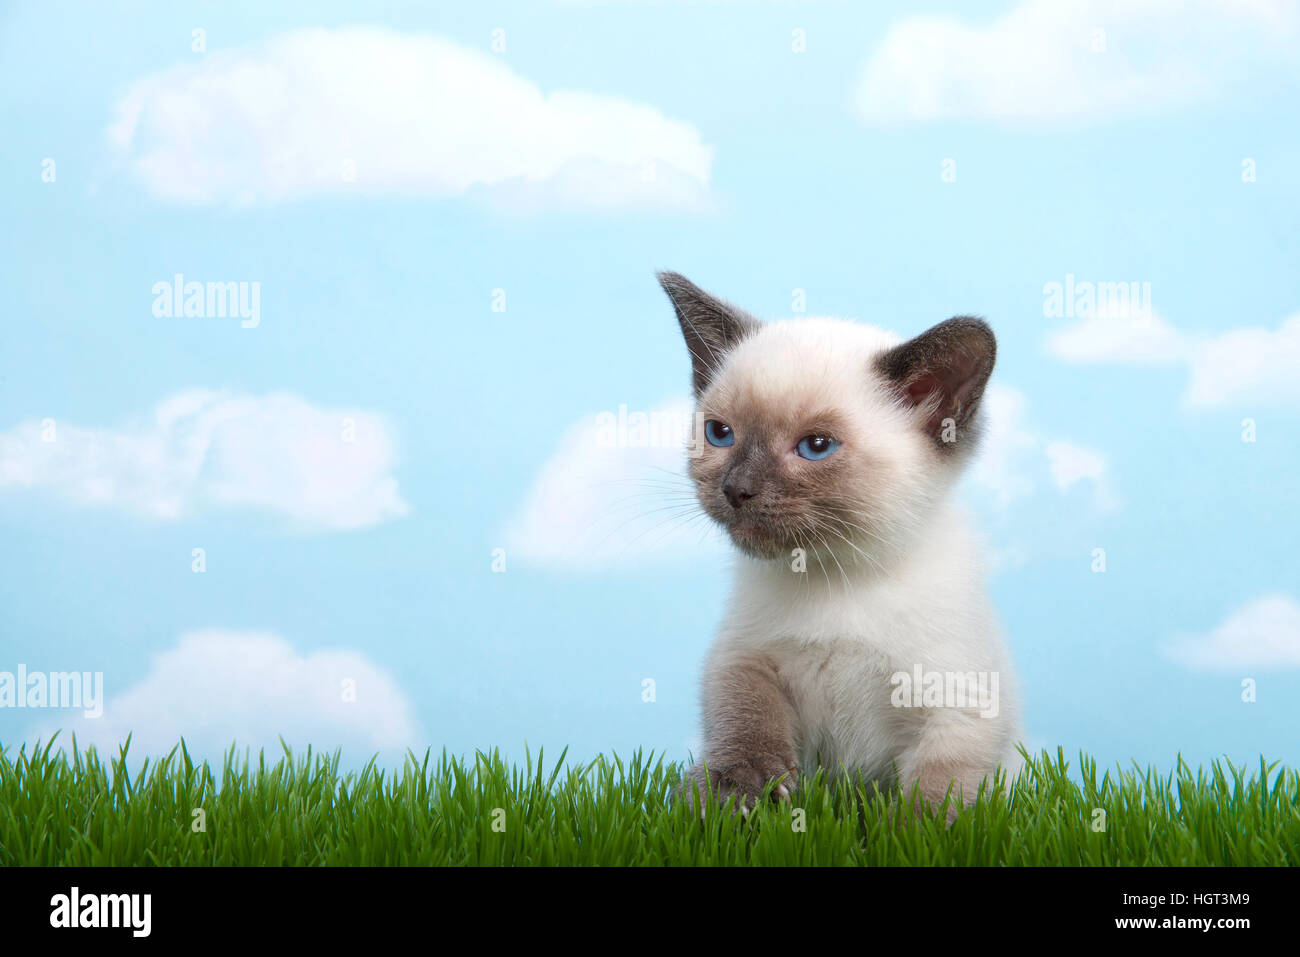 One tiny siamese kitten with munchkin traits sitting in grass looking to viewers left. Blue background, sky with - Stock Image